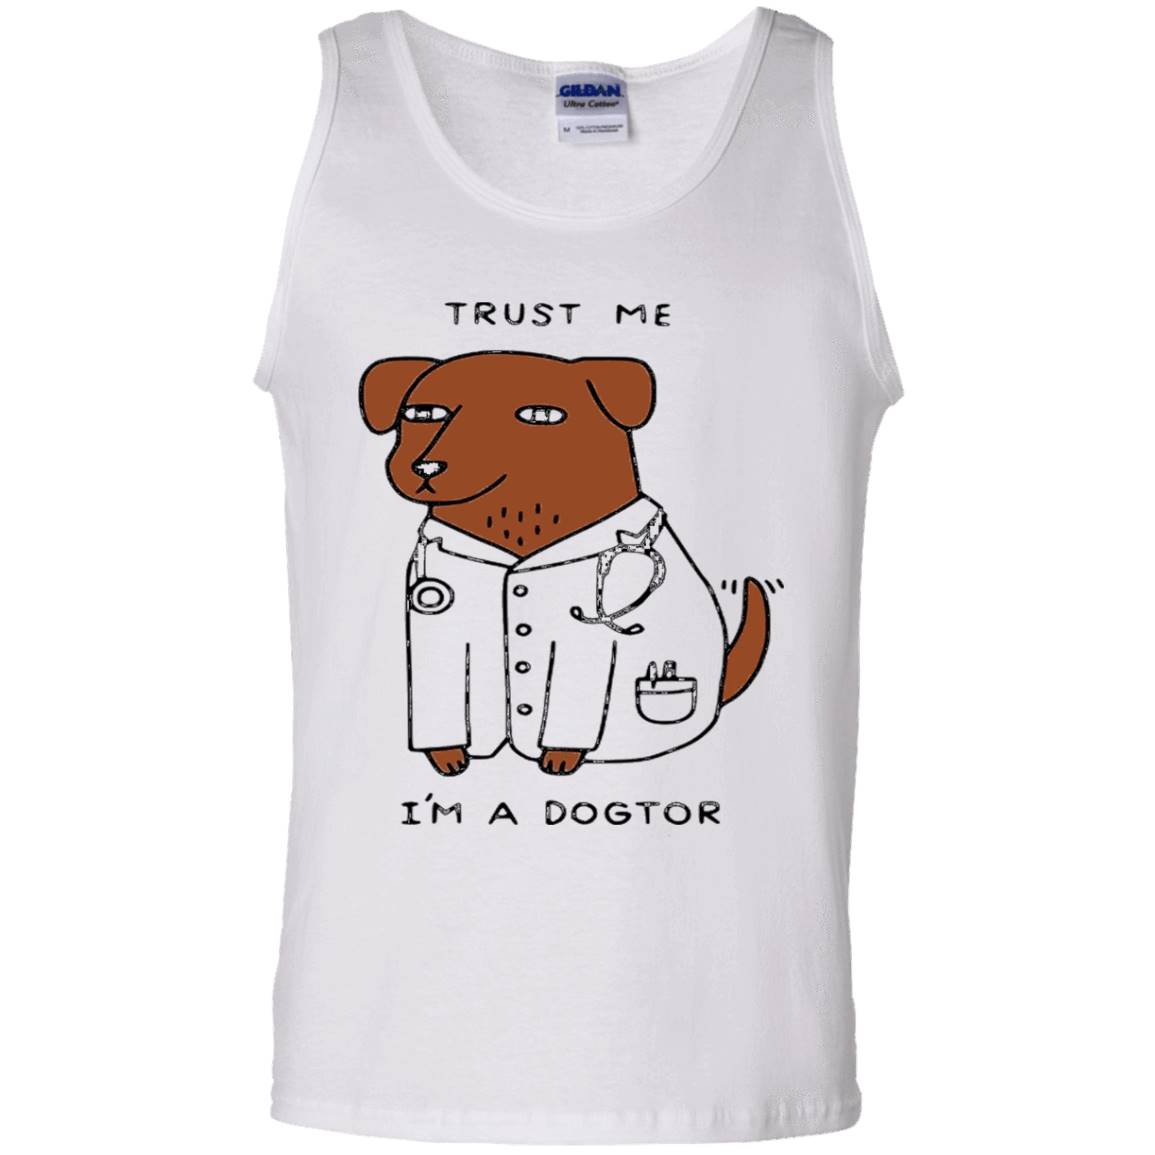 Trust Me I'm A Dogtor – Funny Doctor T shirt – Tank Top